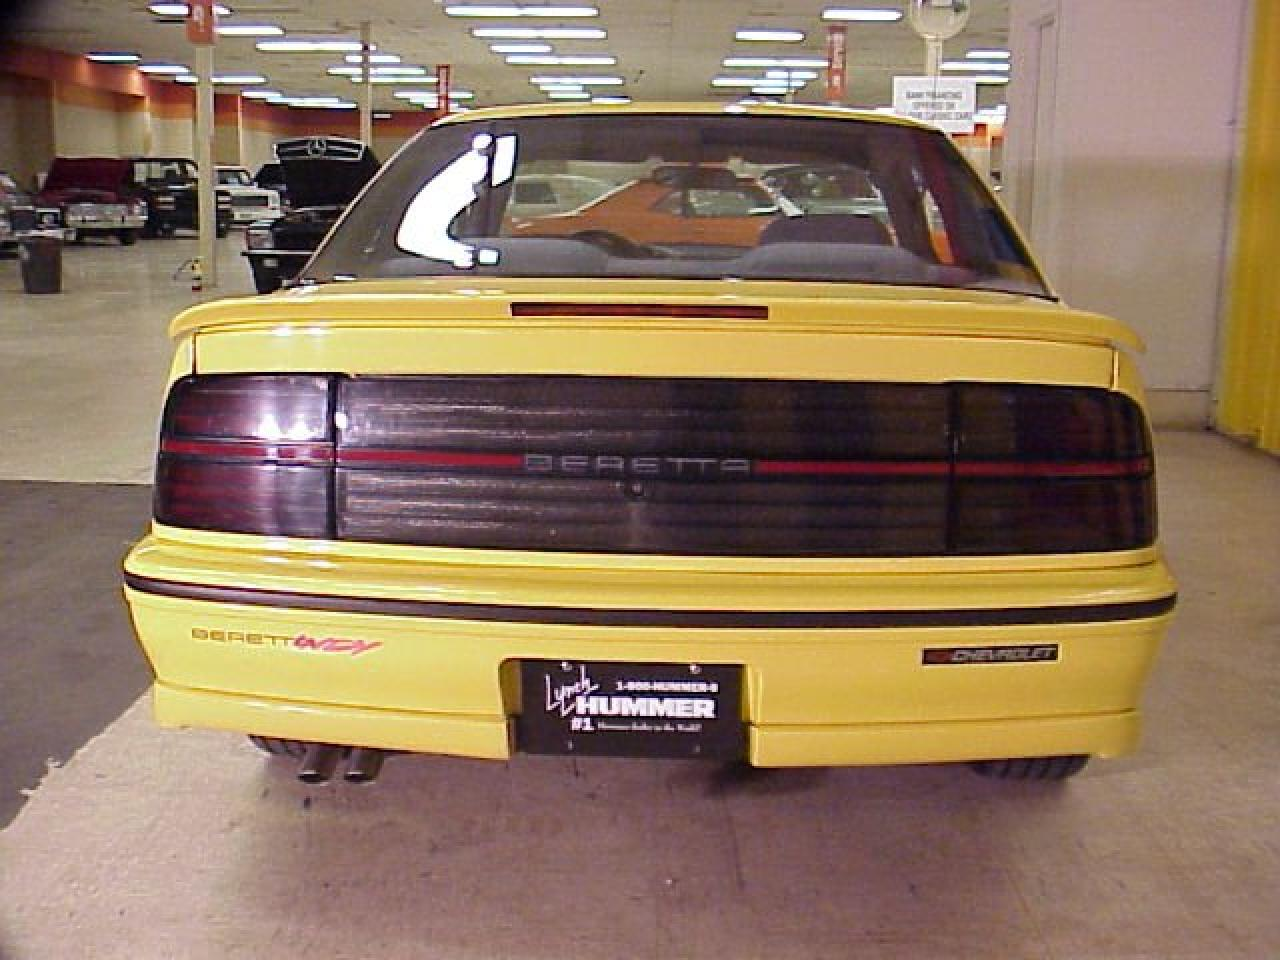 xcellent original 1990 indy pace car replica with all indy markings  #A58426